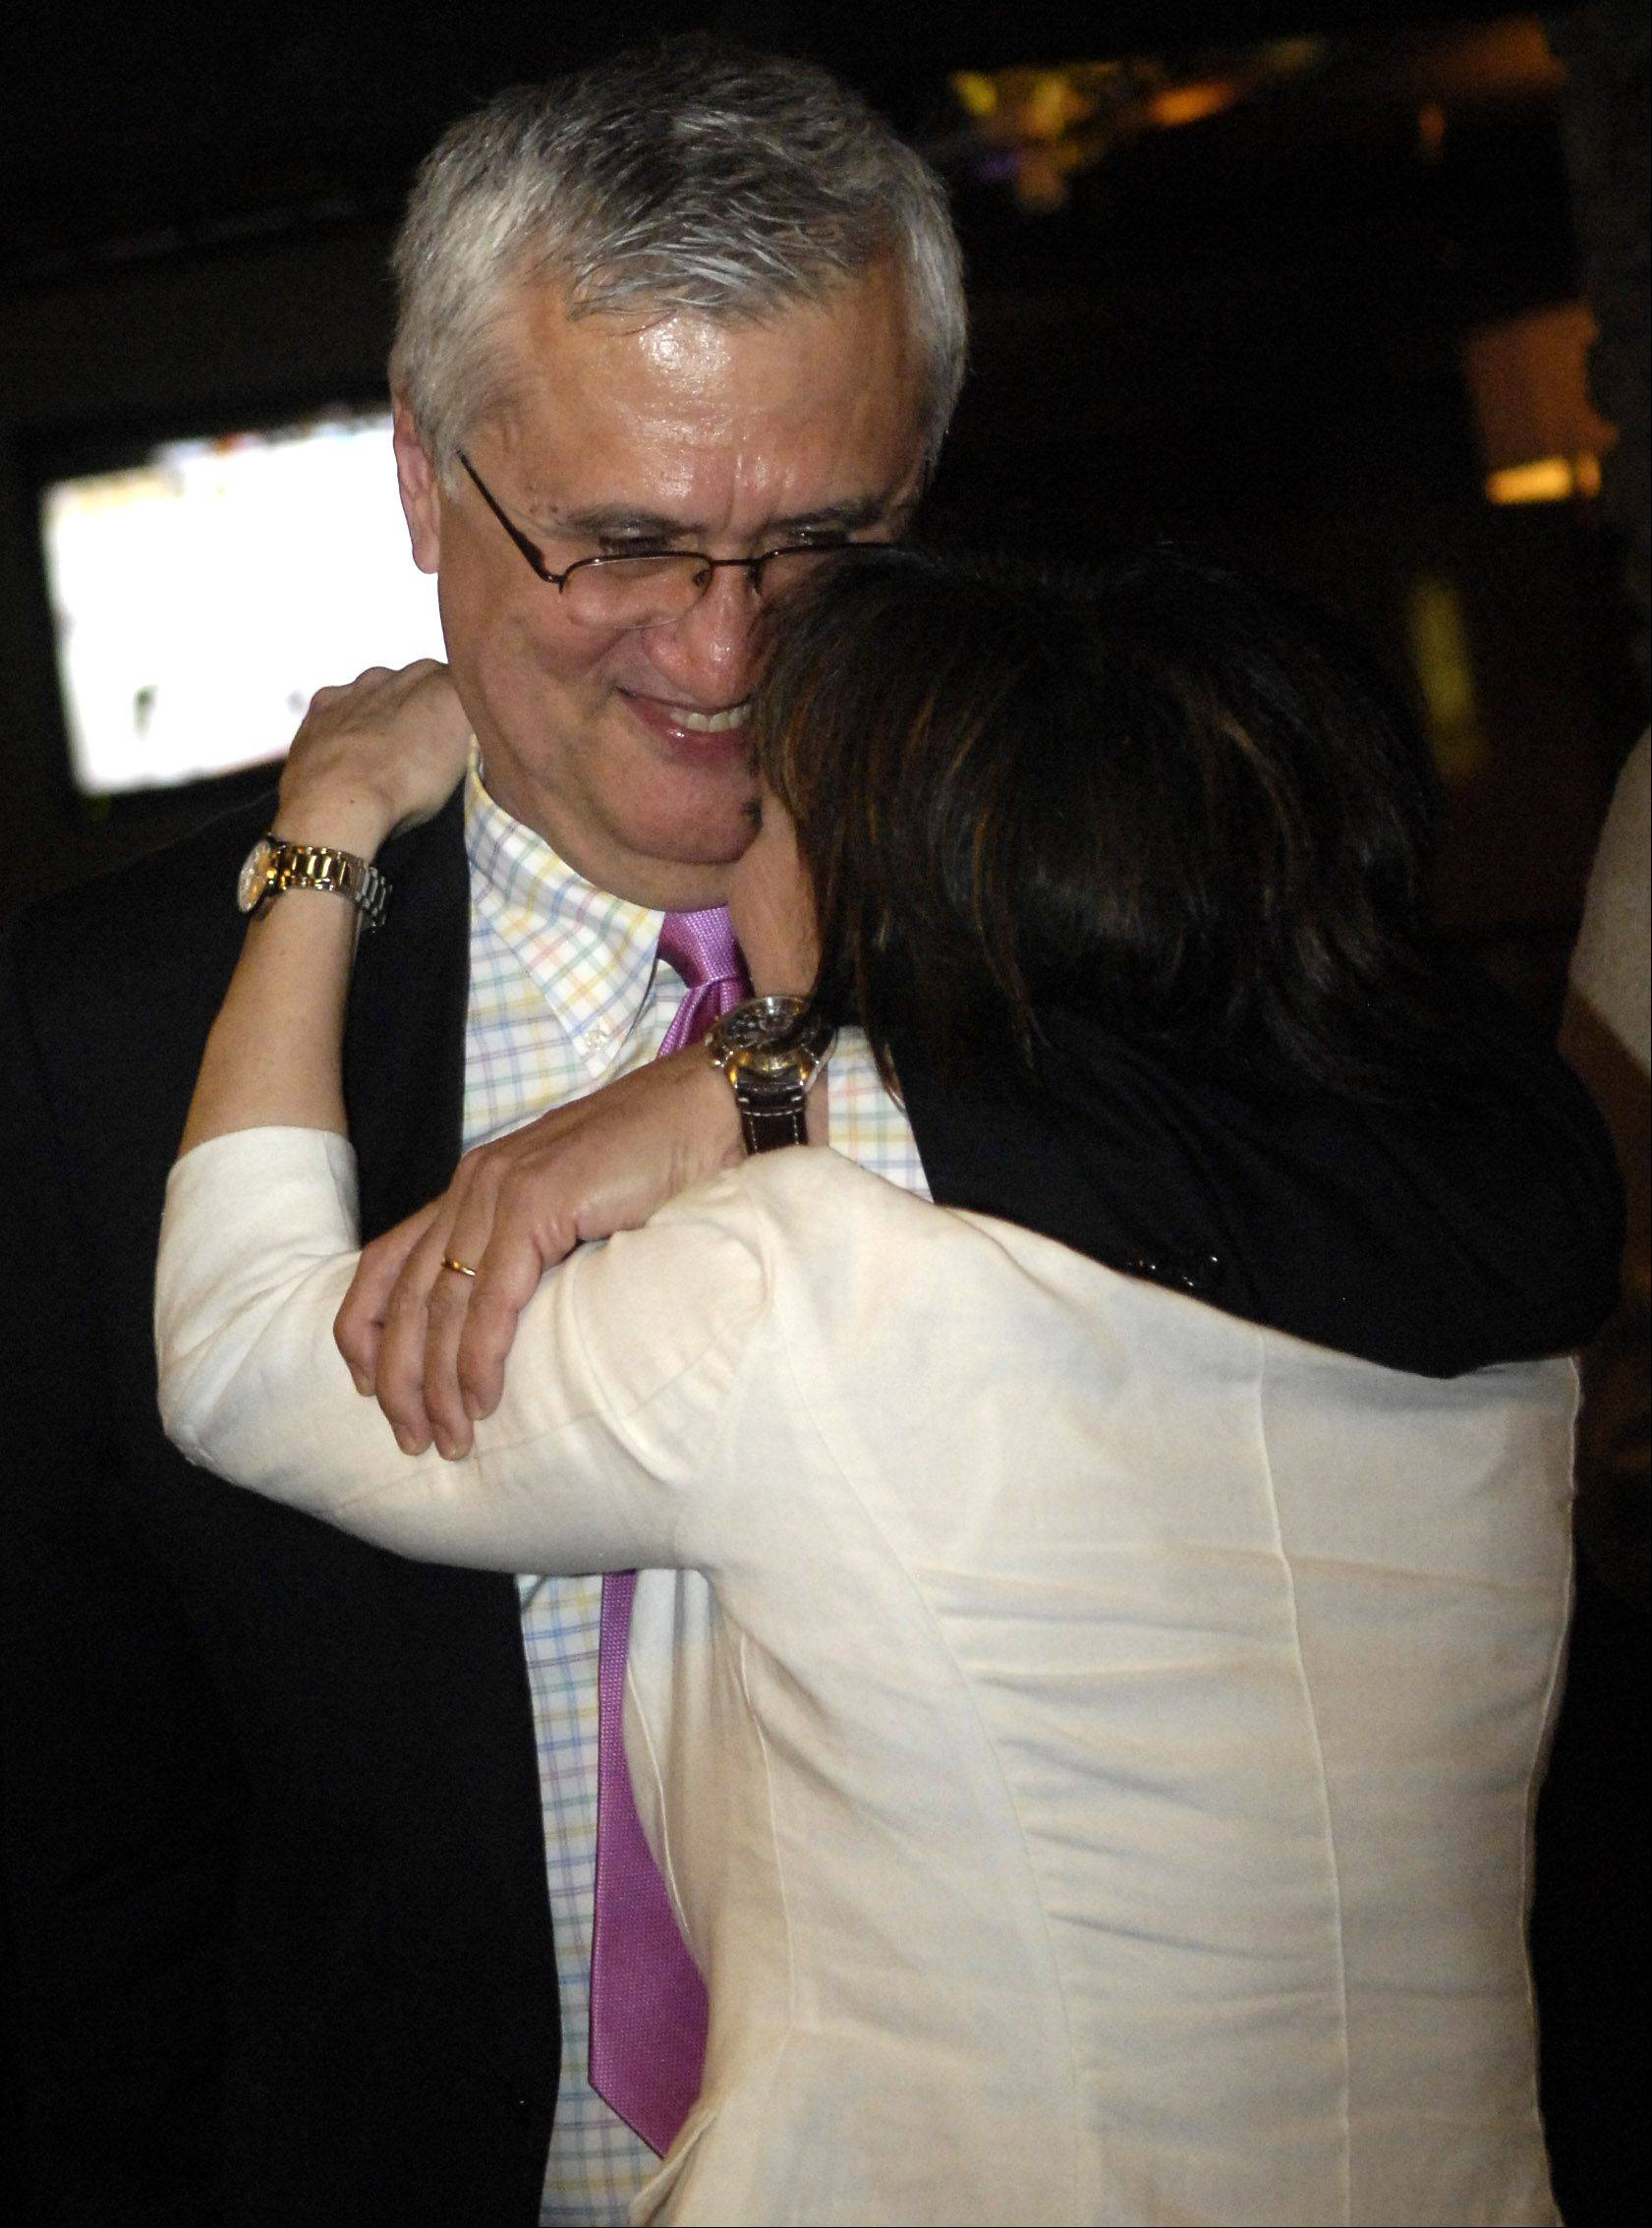 Ray Rogina gets a hug from his wife, Diane Cullen, after learning that he won his race for mayor of St. Charles Tuesday.